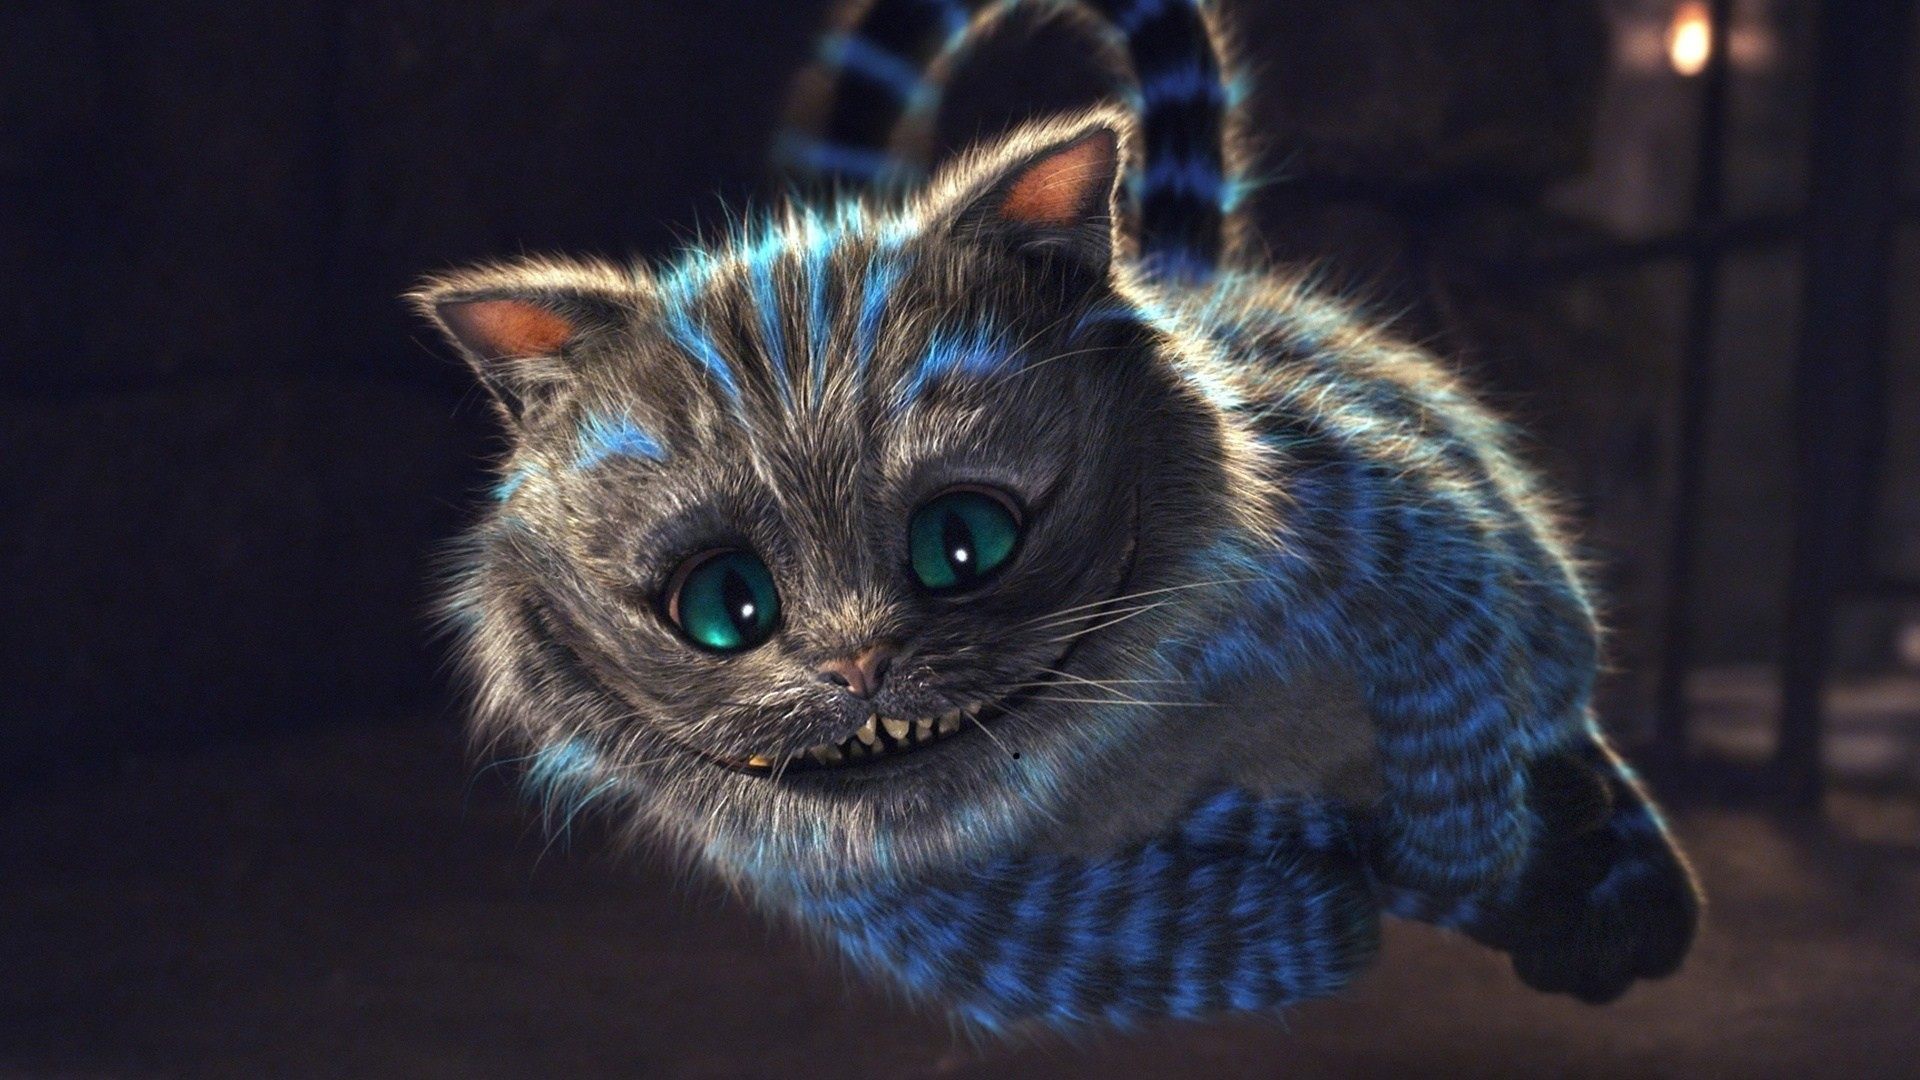 ... Perfect Cheshire Cat Wallpaper Free Download Wallpapers - Download Free Cool Wallpapers for PC Download Free 1920x1080